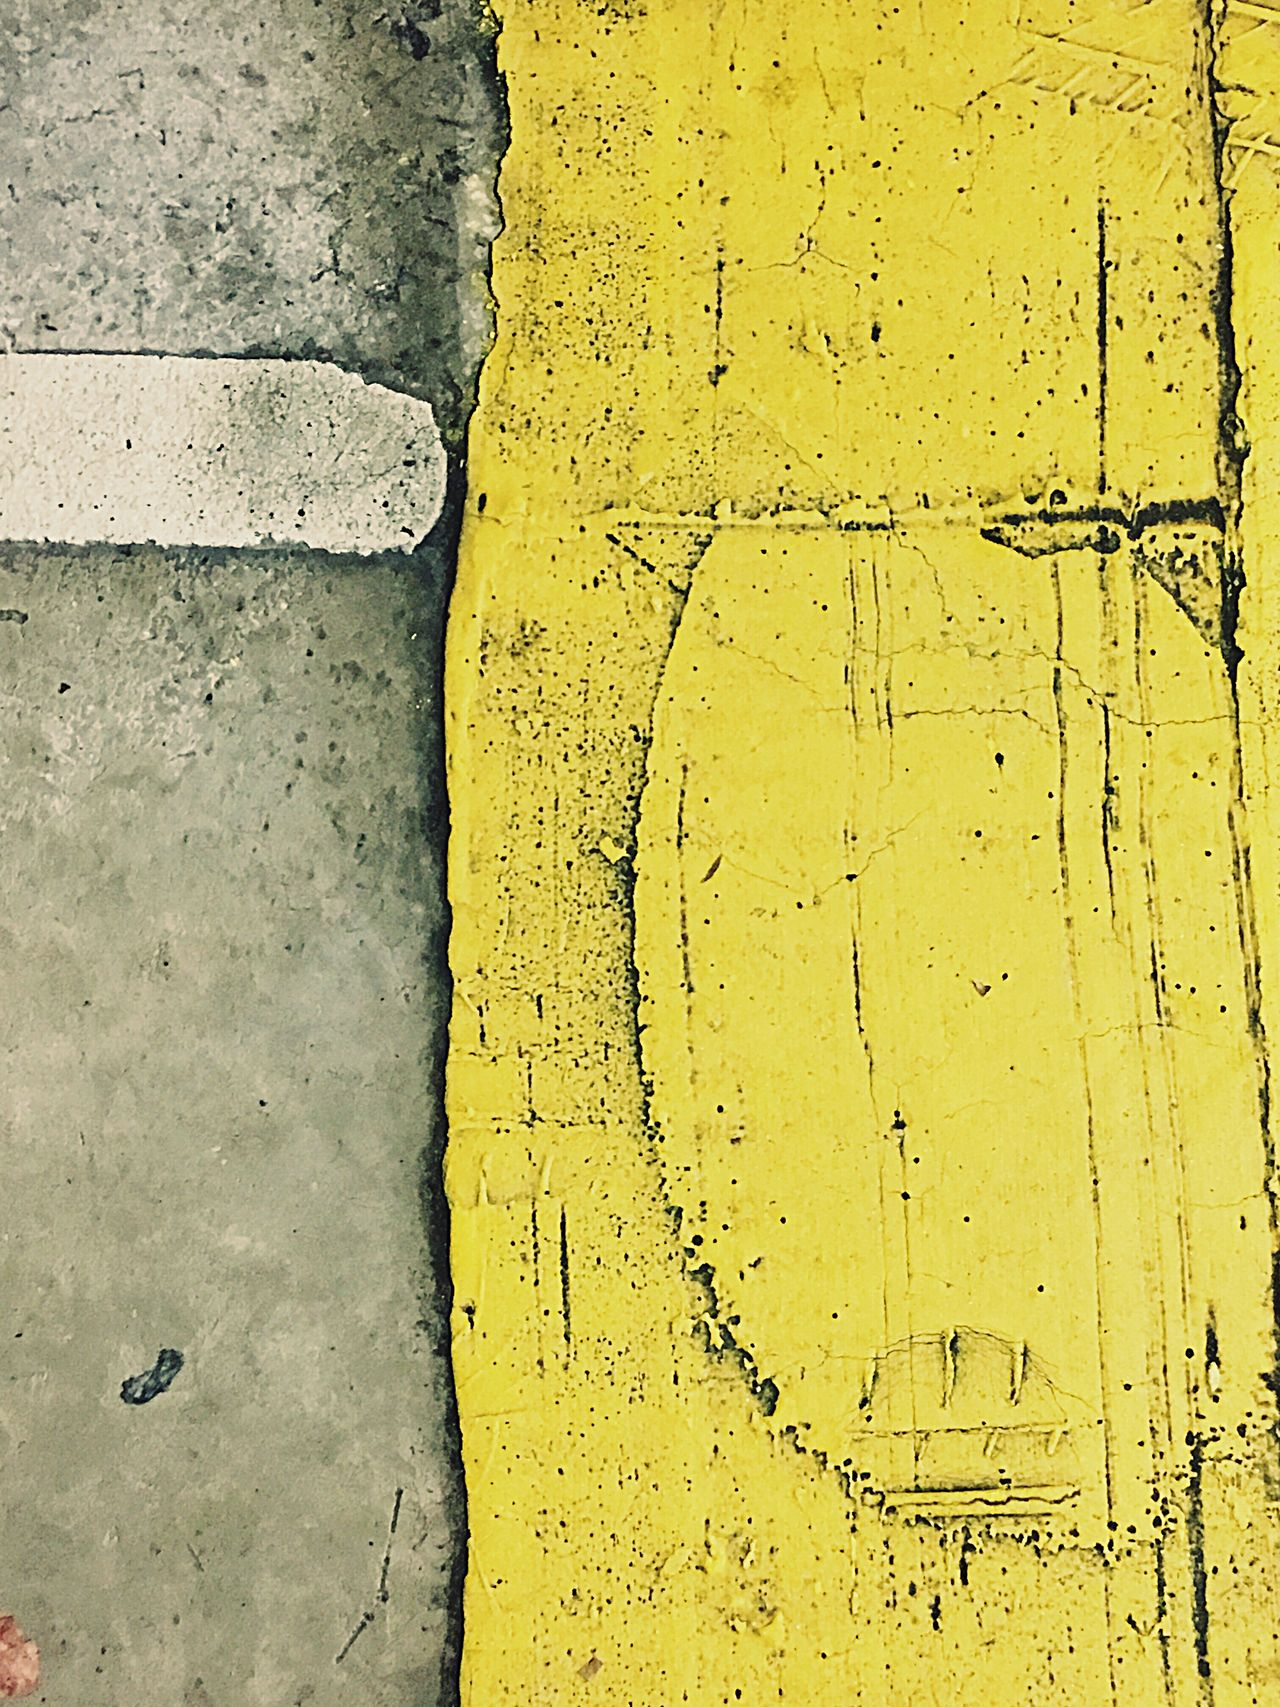 Yellow Paint Concrete Yellow No People Textured  Day Close-up Car Park Car Park Shapes And Lines Close Up Closeup Paint Texture Textures And Surfaces Tyre Mark Tyre Tracks Parking Lot Parking Garage Yellow Walkway Parking Space